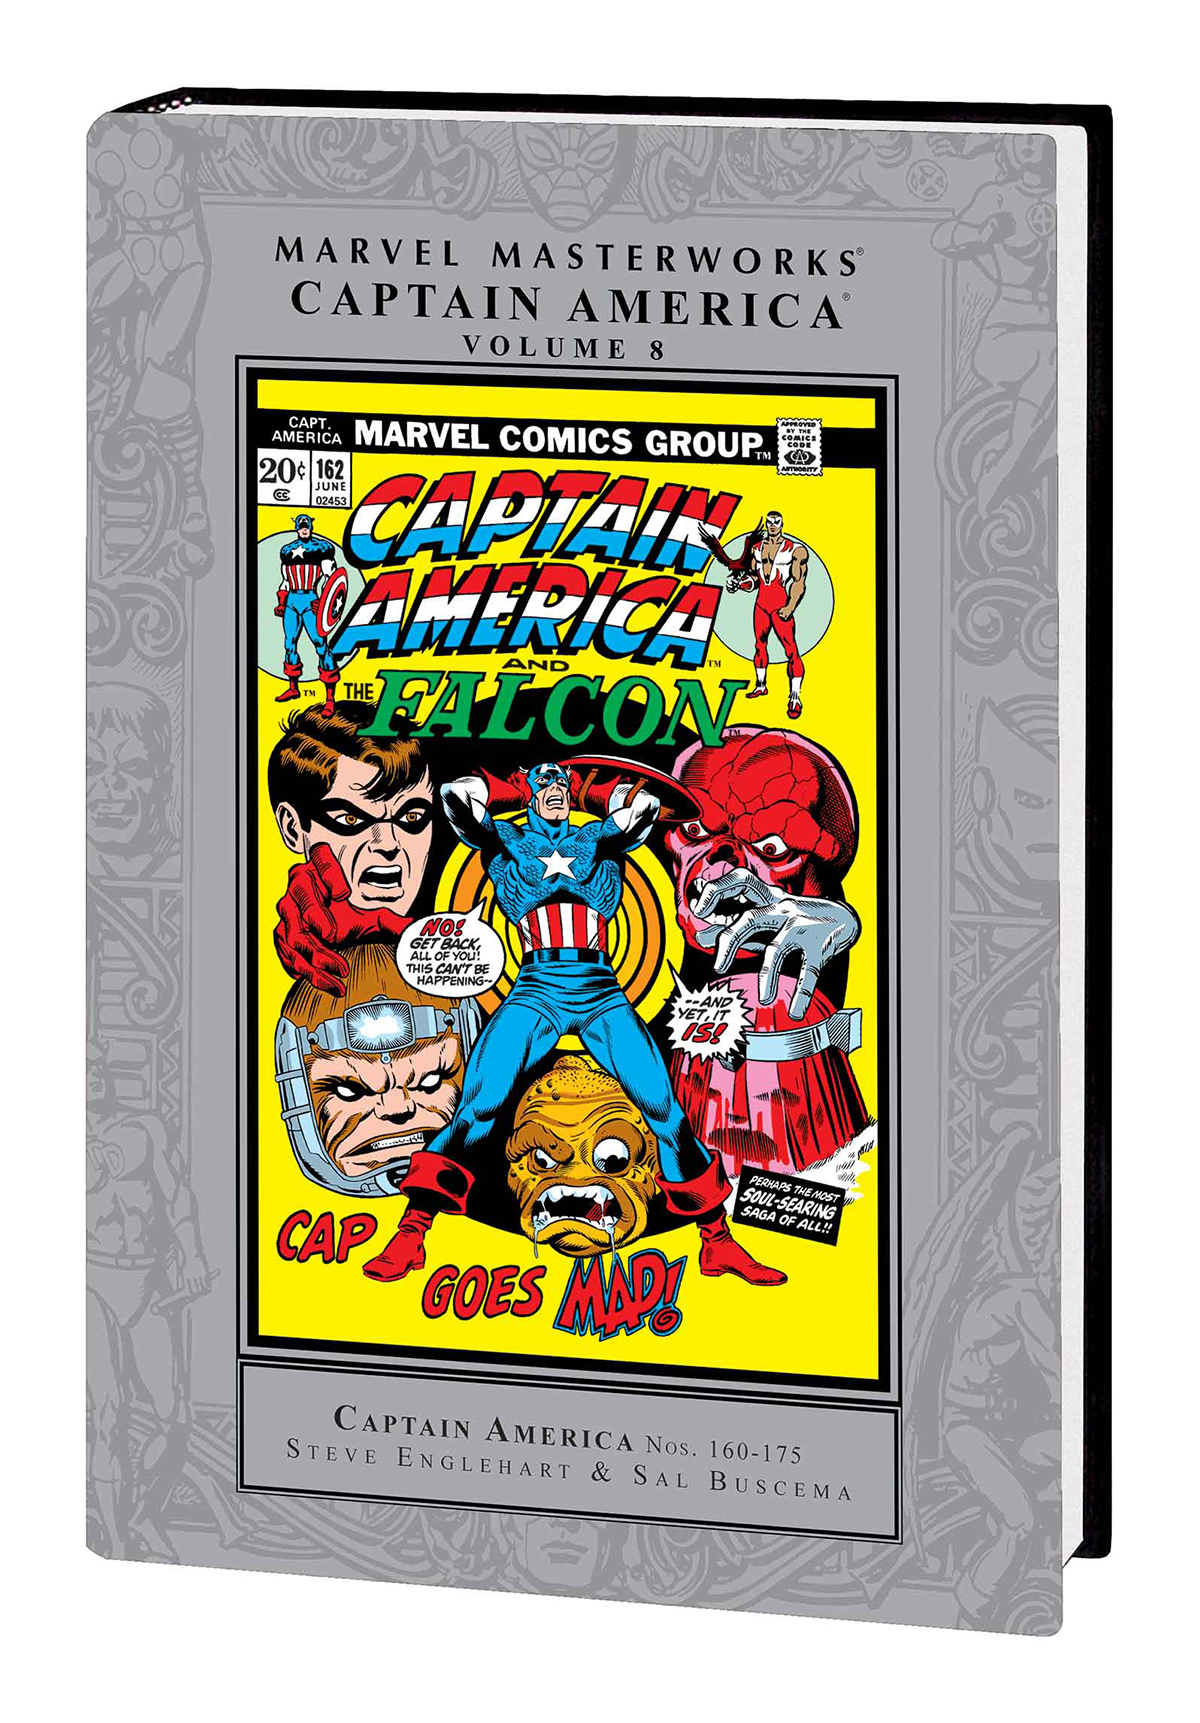 MMW CAPTAIN AMERICA HC VOL 08